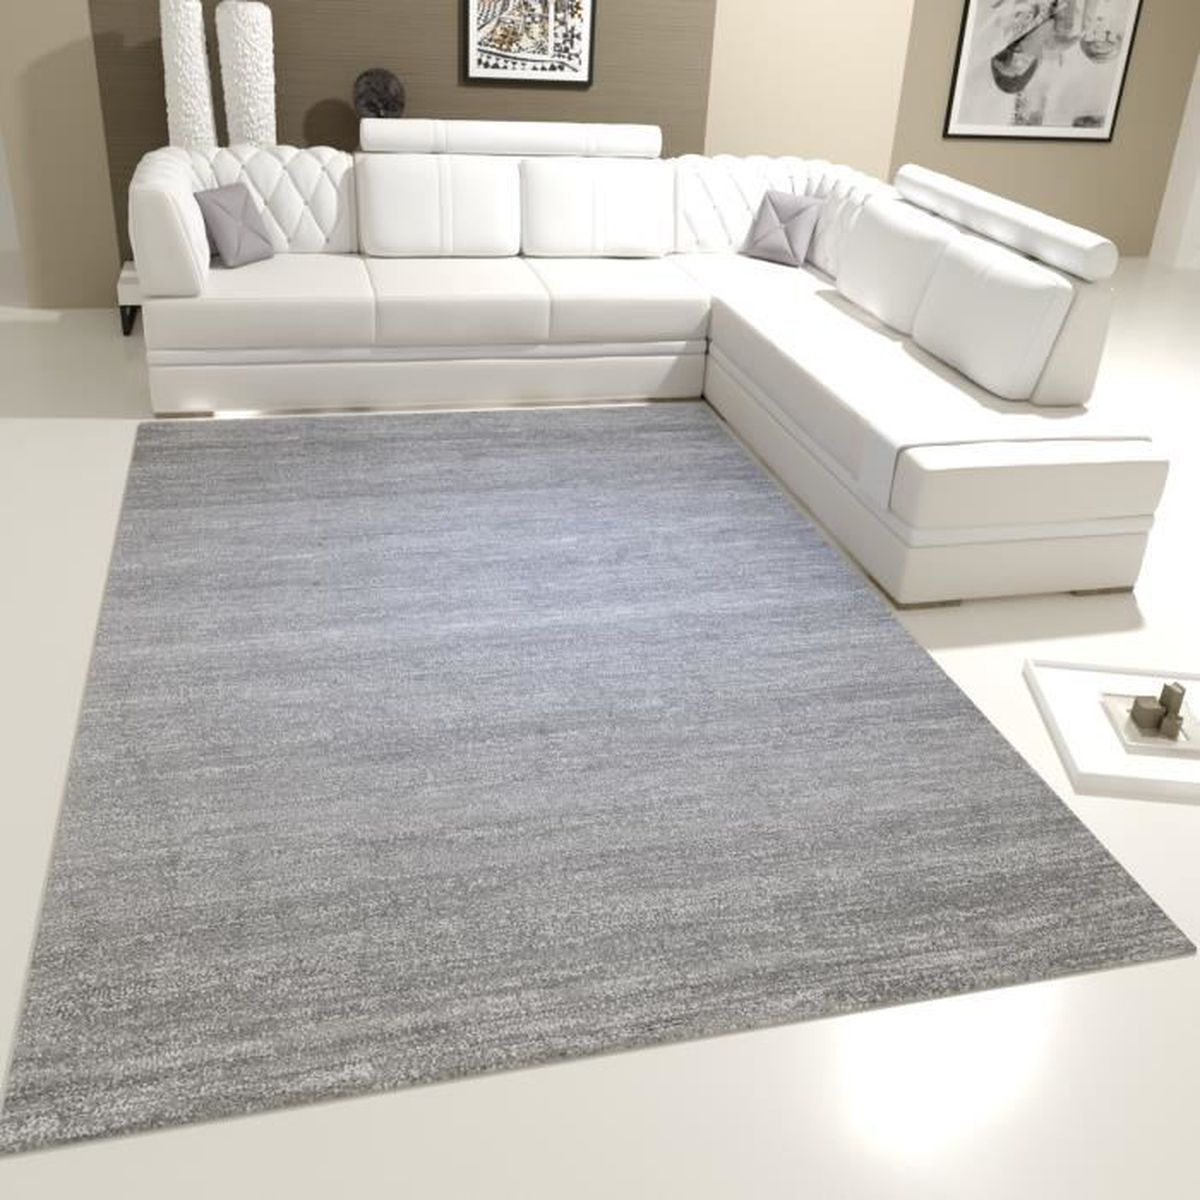 tapis gris 80x150 achat vente tapis gris 80x150 pas cher cdiscount. Black Bedroom Furniture Sets. Home Design Ideas